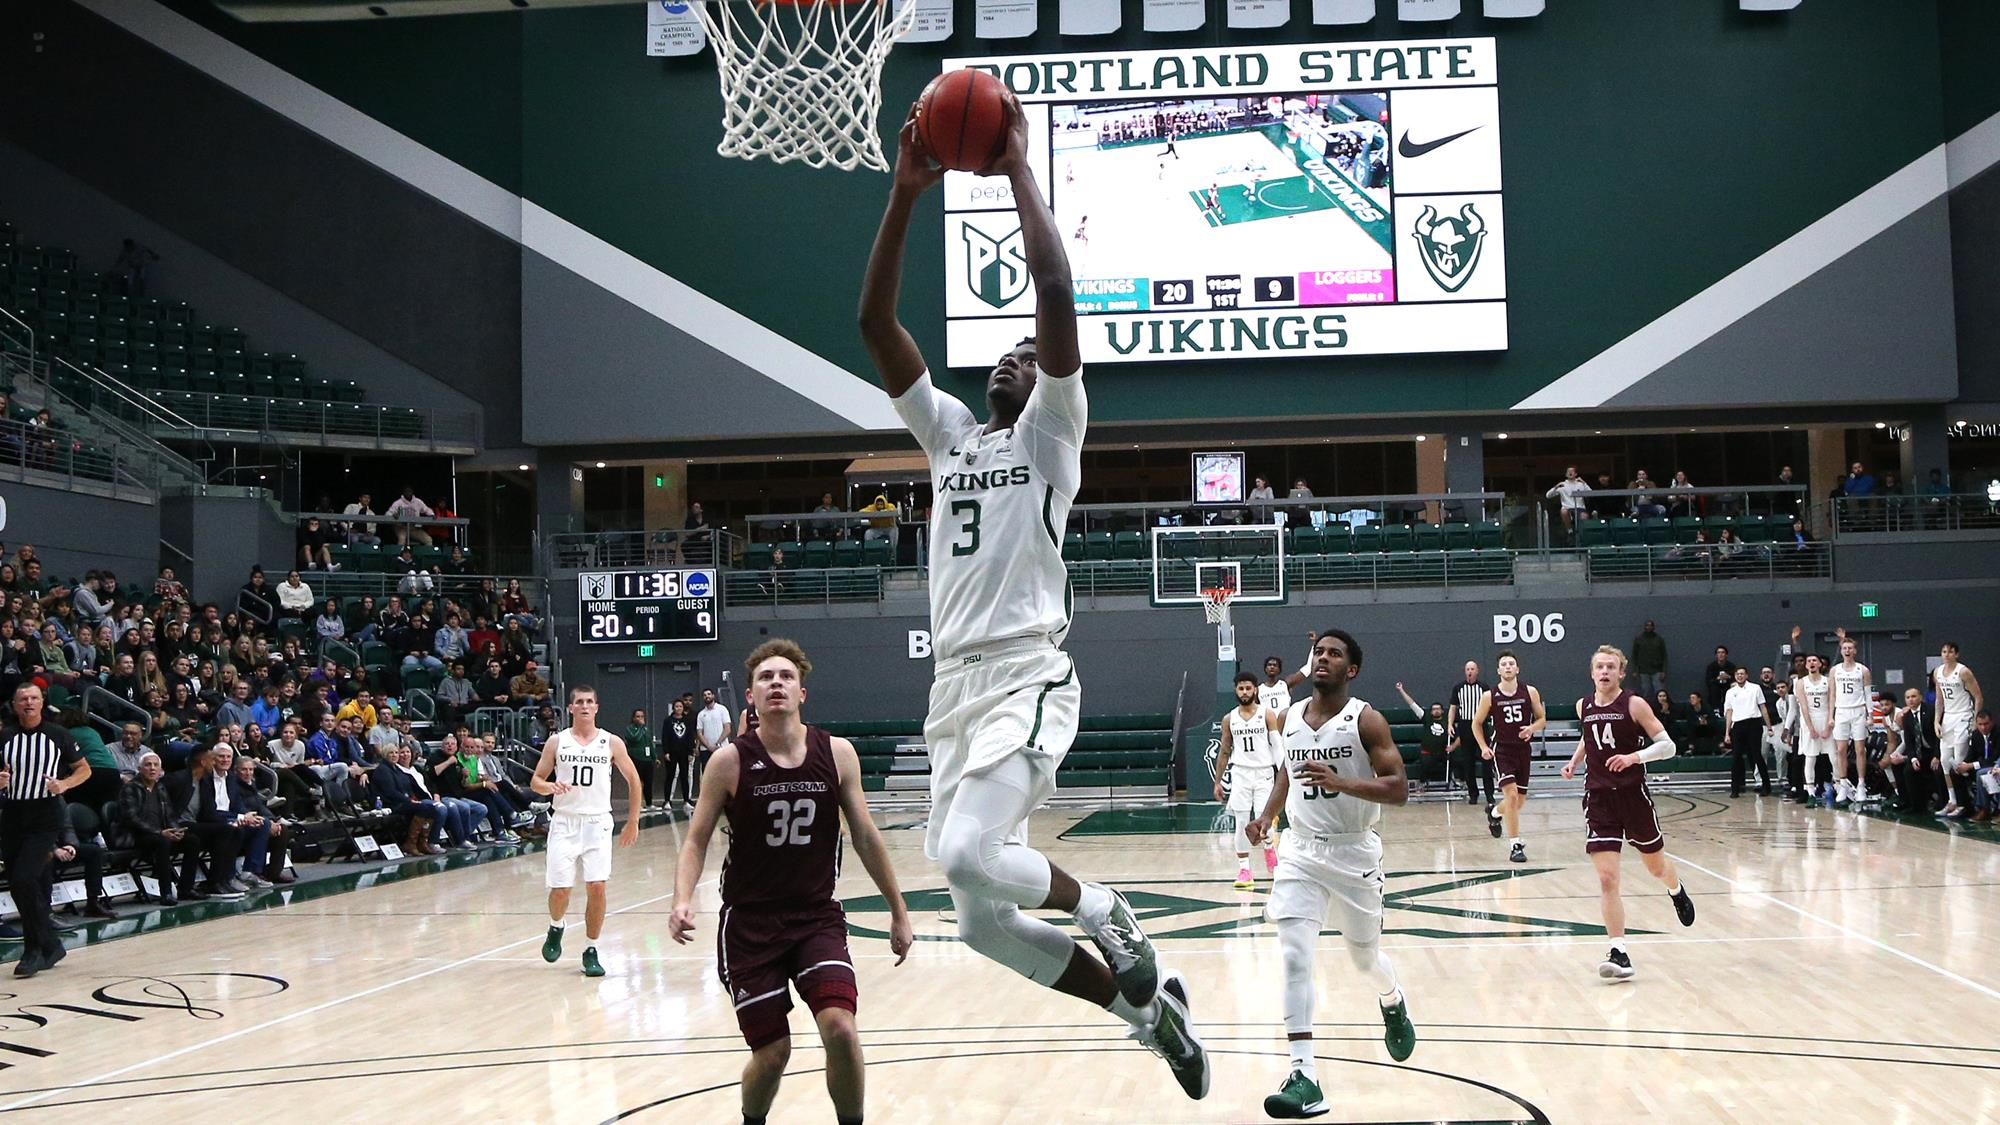 Scouting Report Portland State Vikings